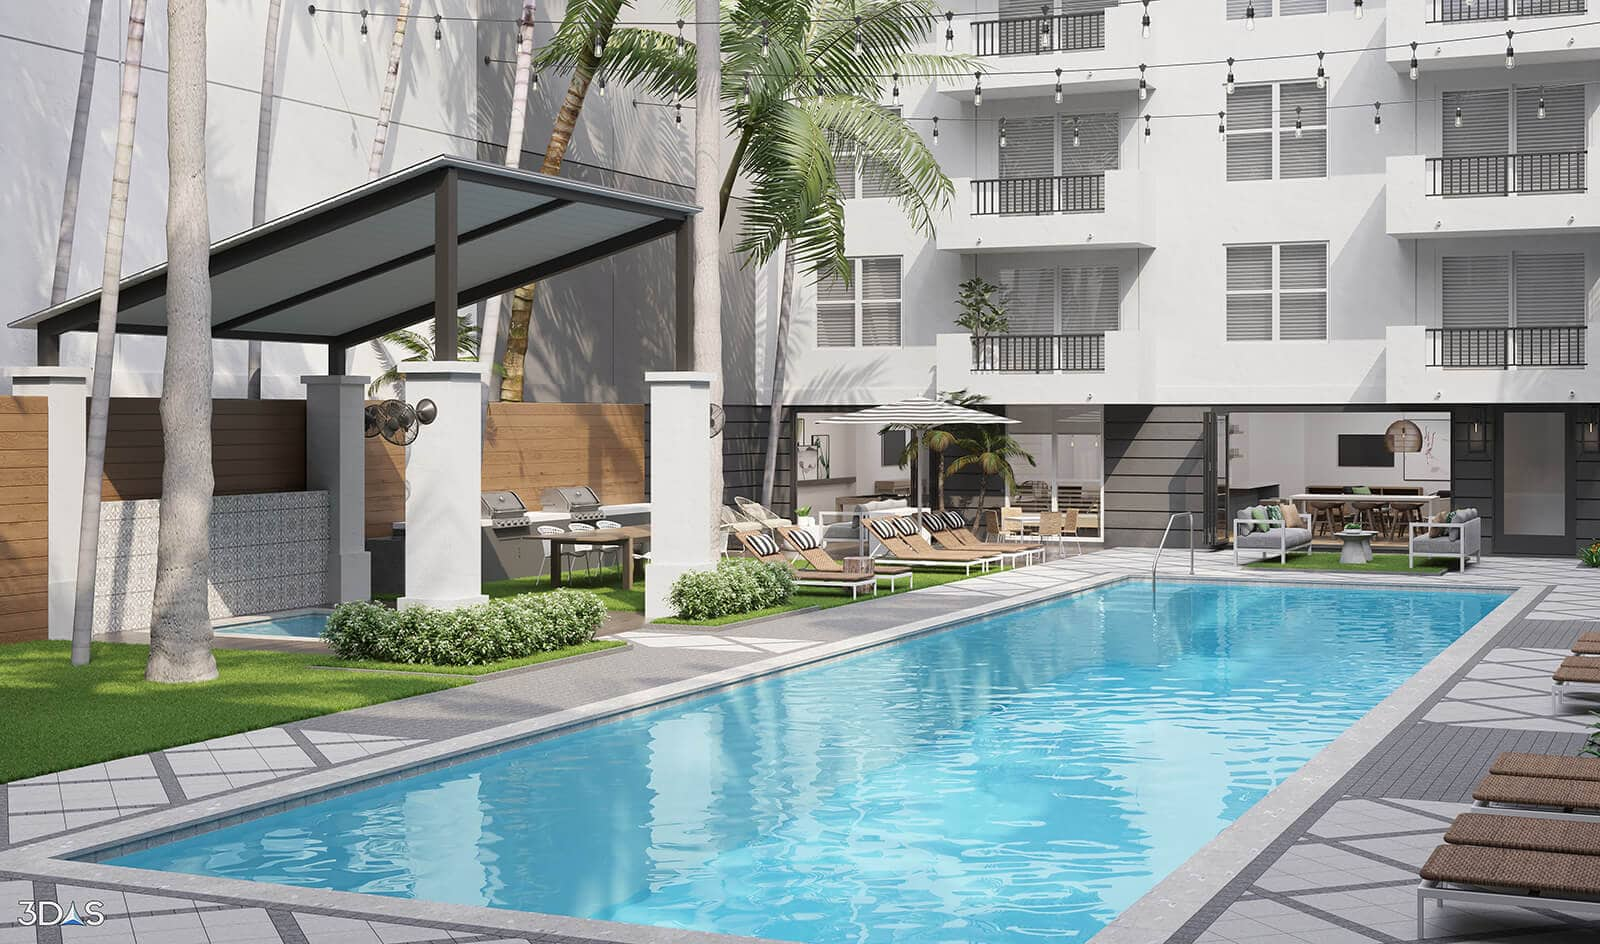 Avana Bayview is located in Pompano Beach, Florida. 3D Pool Exterior Rendering by 3DAS